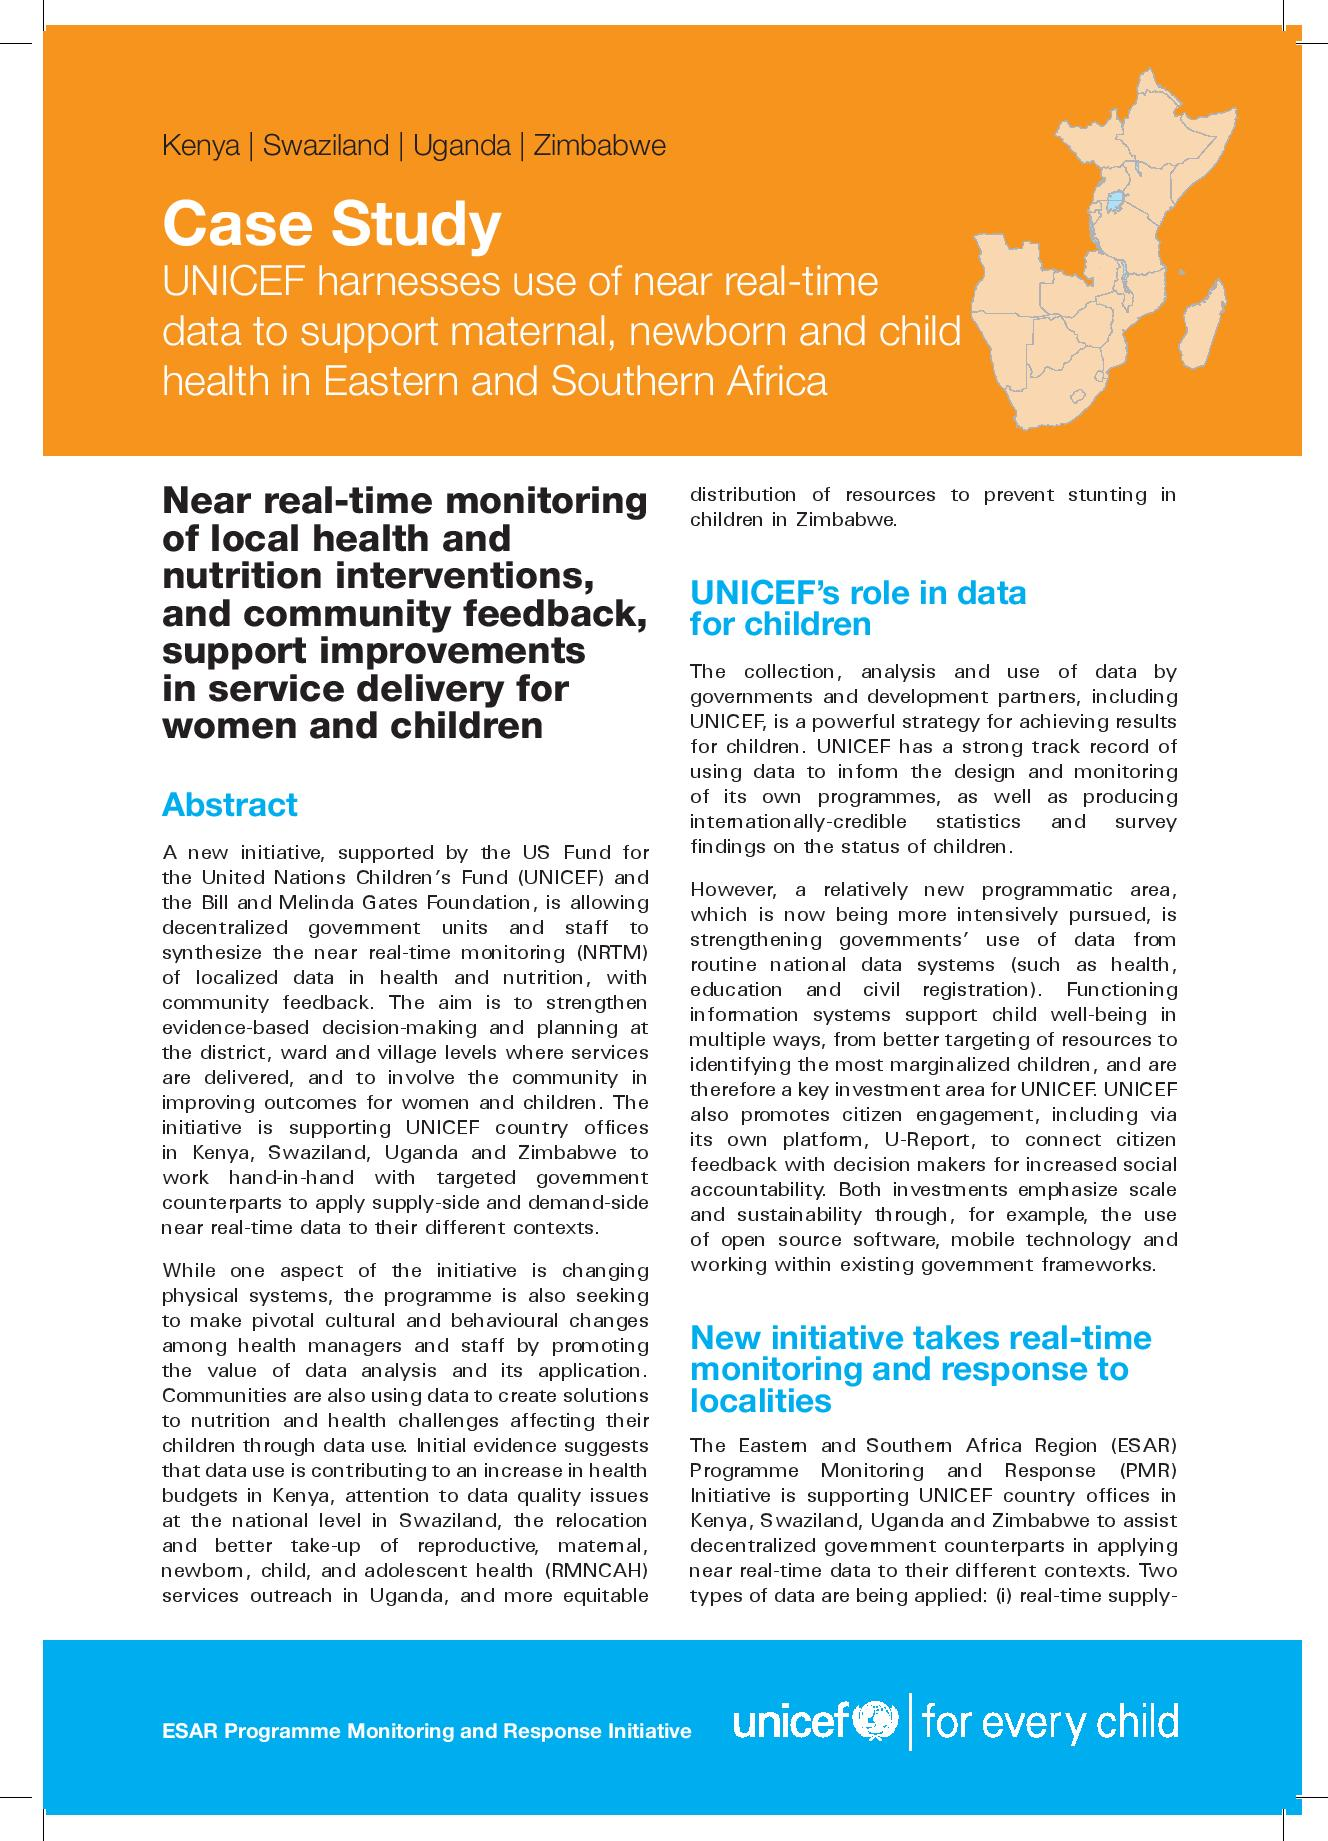 Case study: Harnessing use of near real-time data to support maternal, newborn and child health